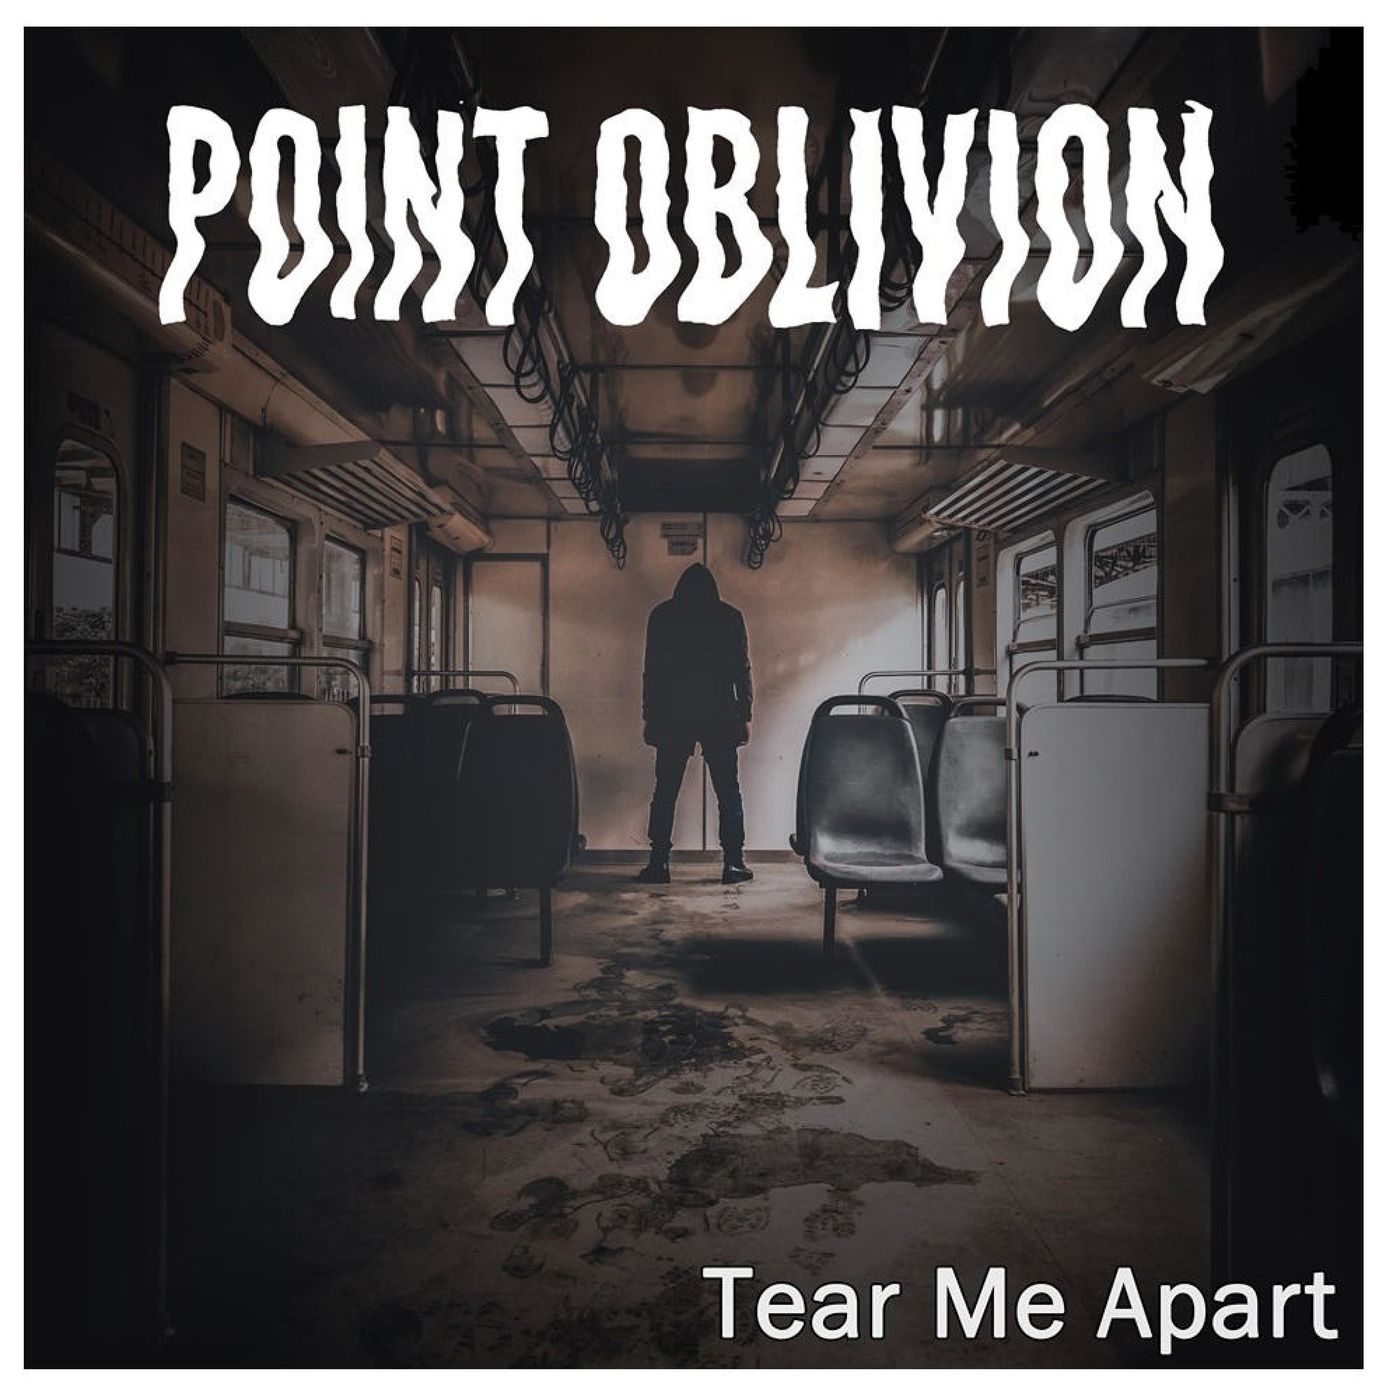 Point Oblivion - Tear Me Apart [single] (2020)